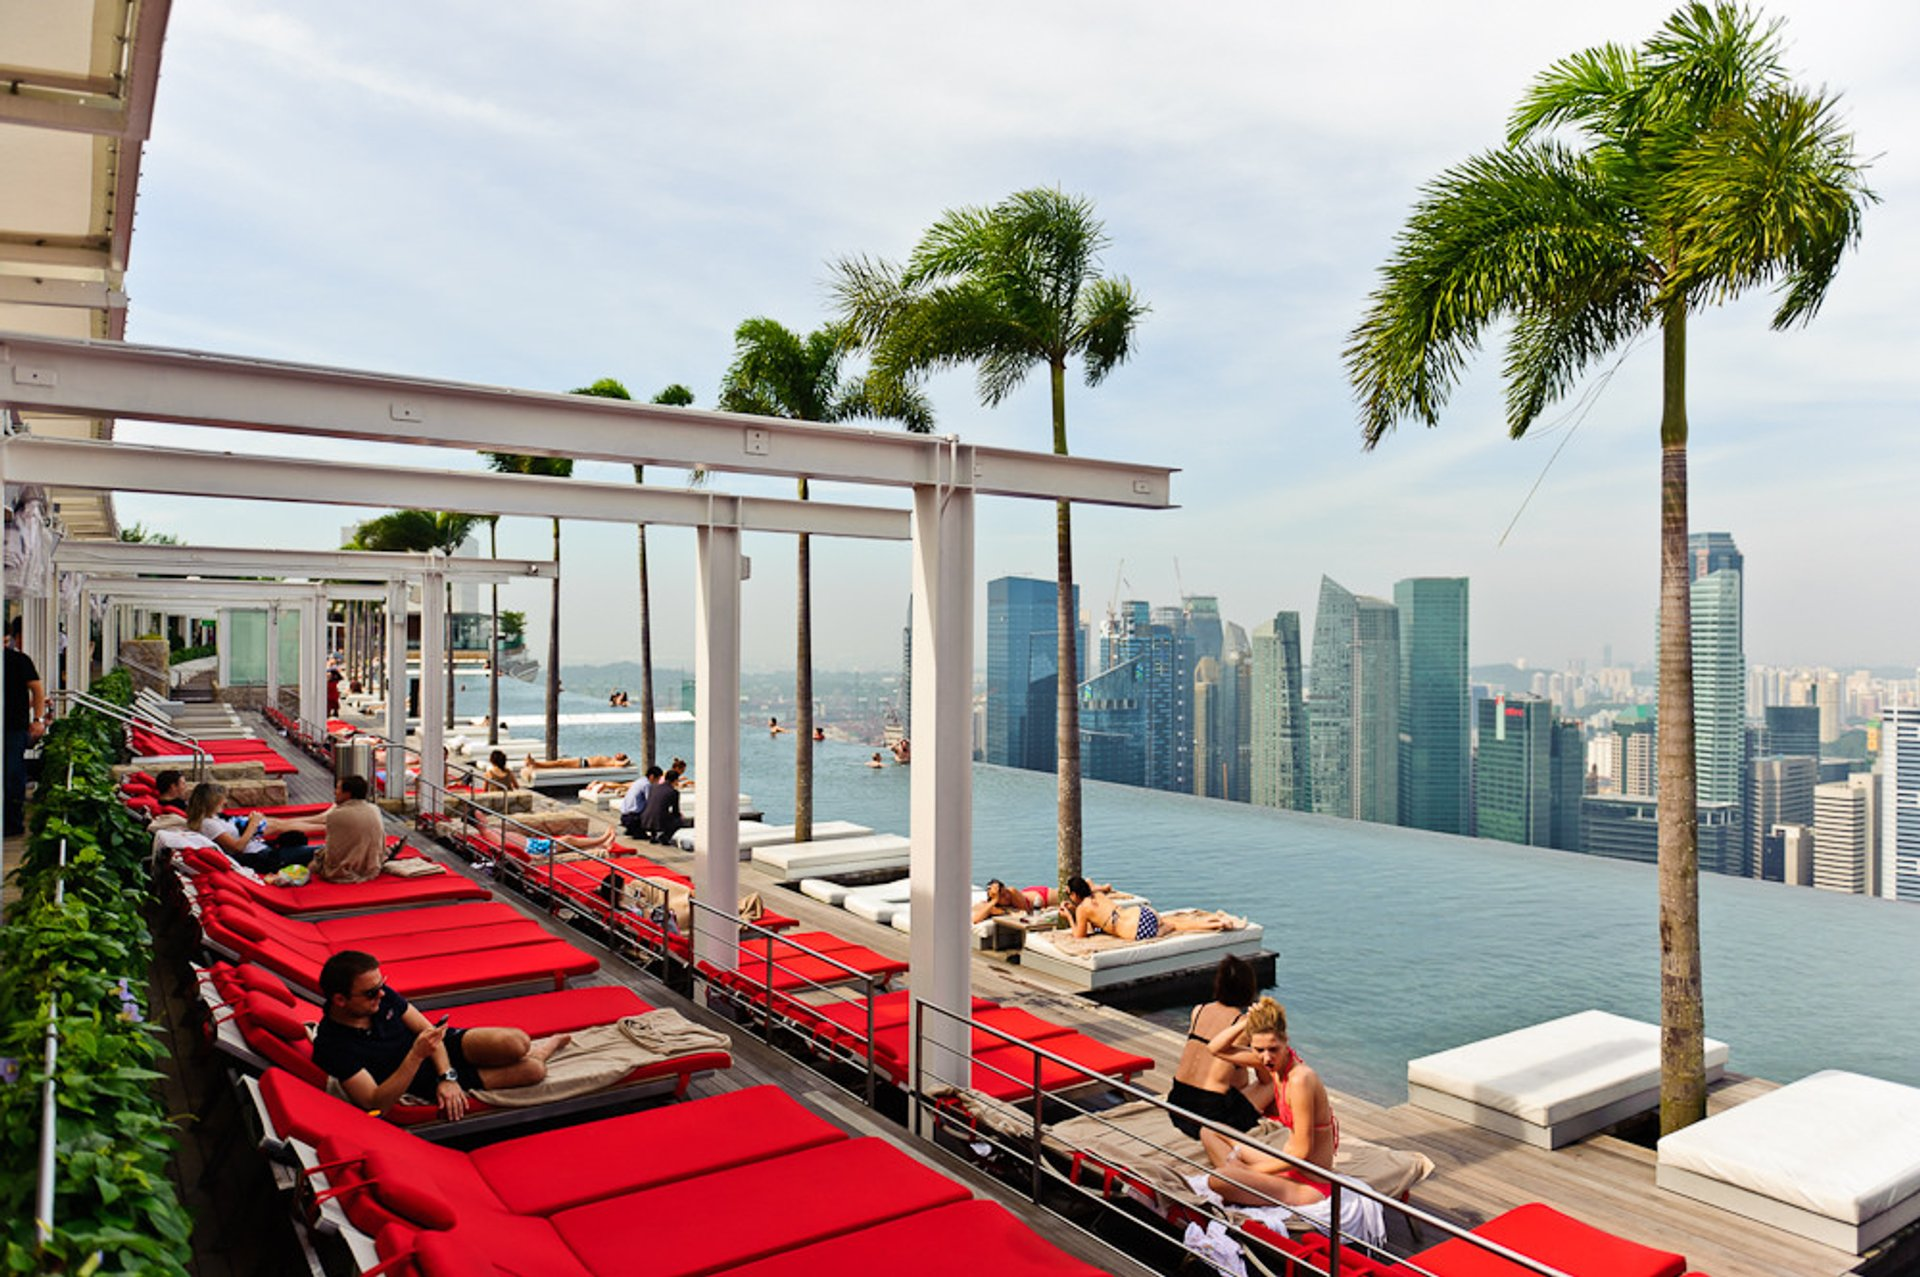 Marina Bay Sands SkyPark in Singapore 2020 - Best Time